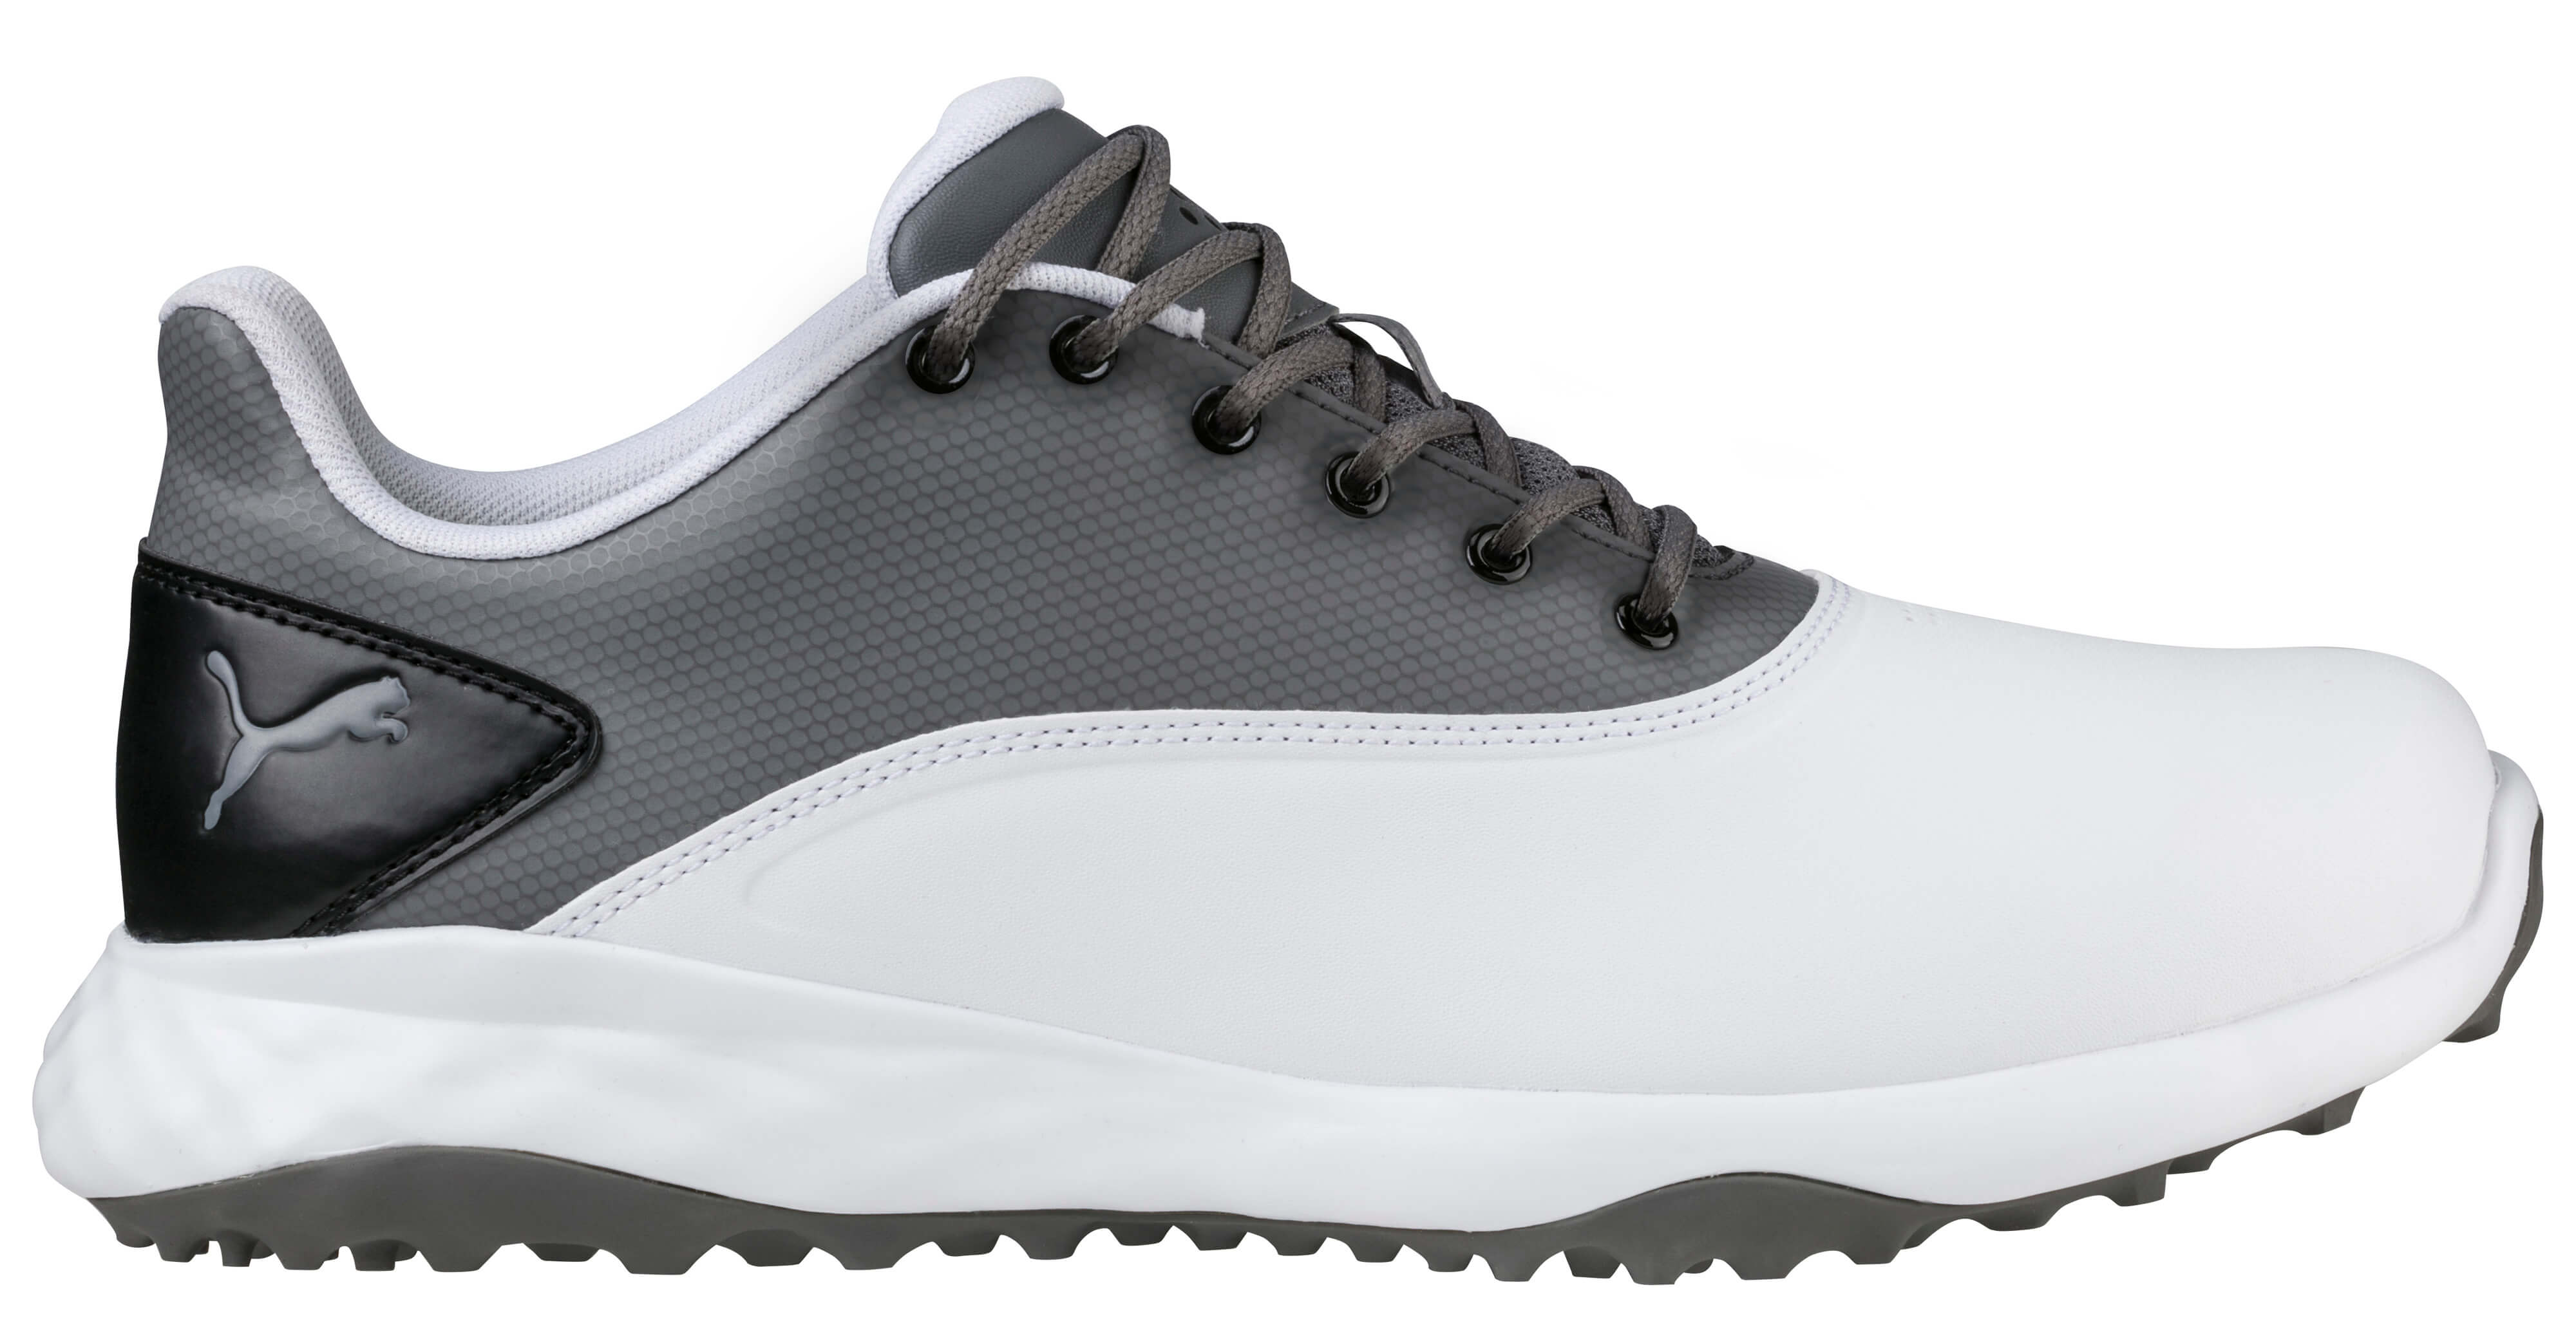 e2f8806f466e6b Details about Puma Grip Fusion Golf Shoes 2018 Men s Spikeless 189425 New-  Choose Color   Size